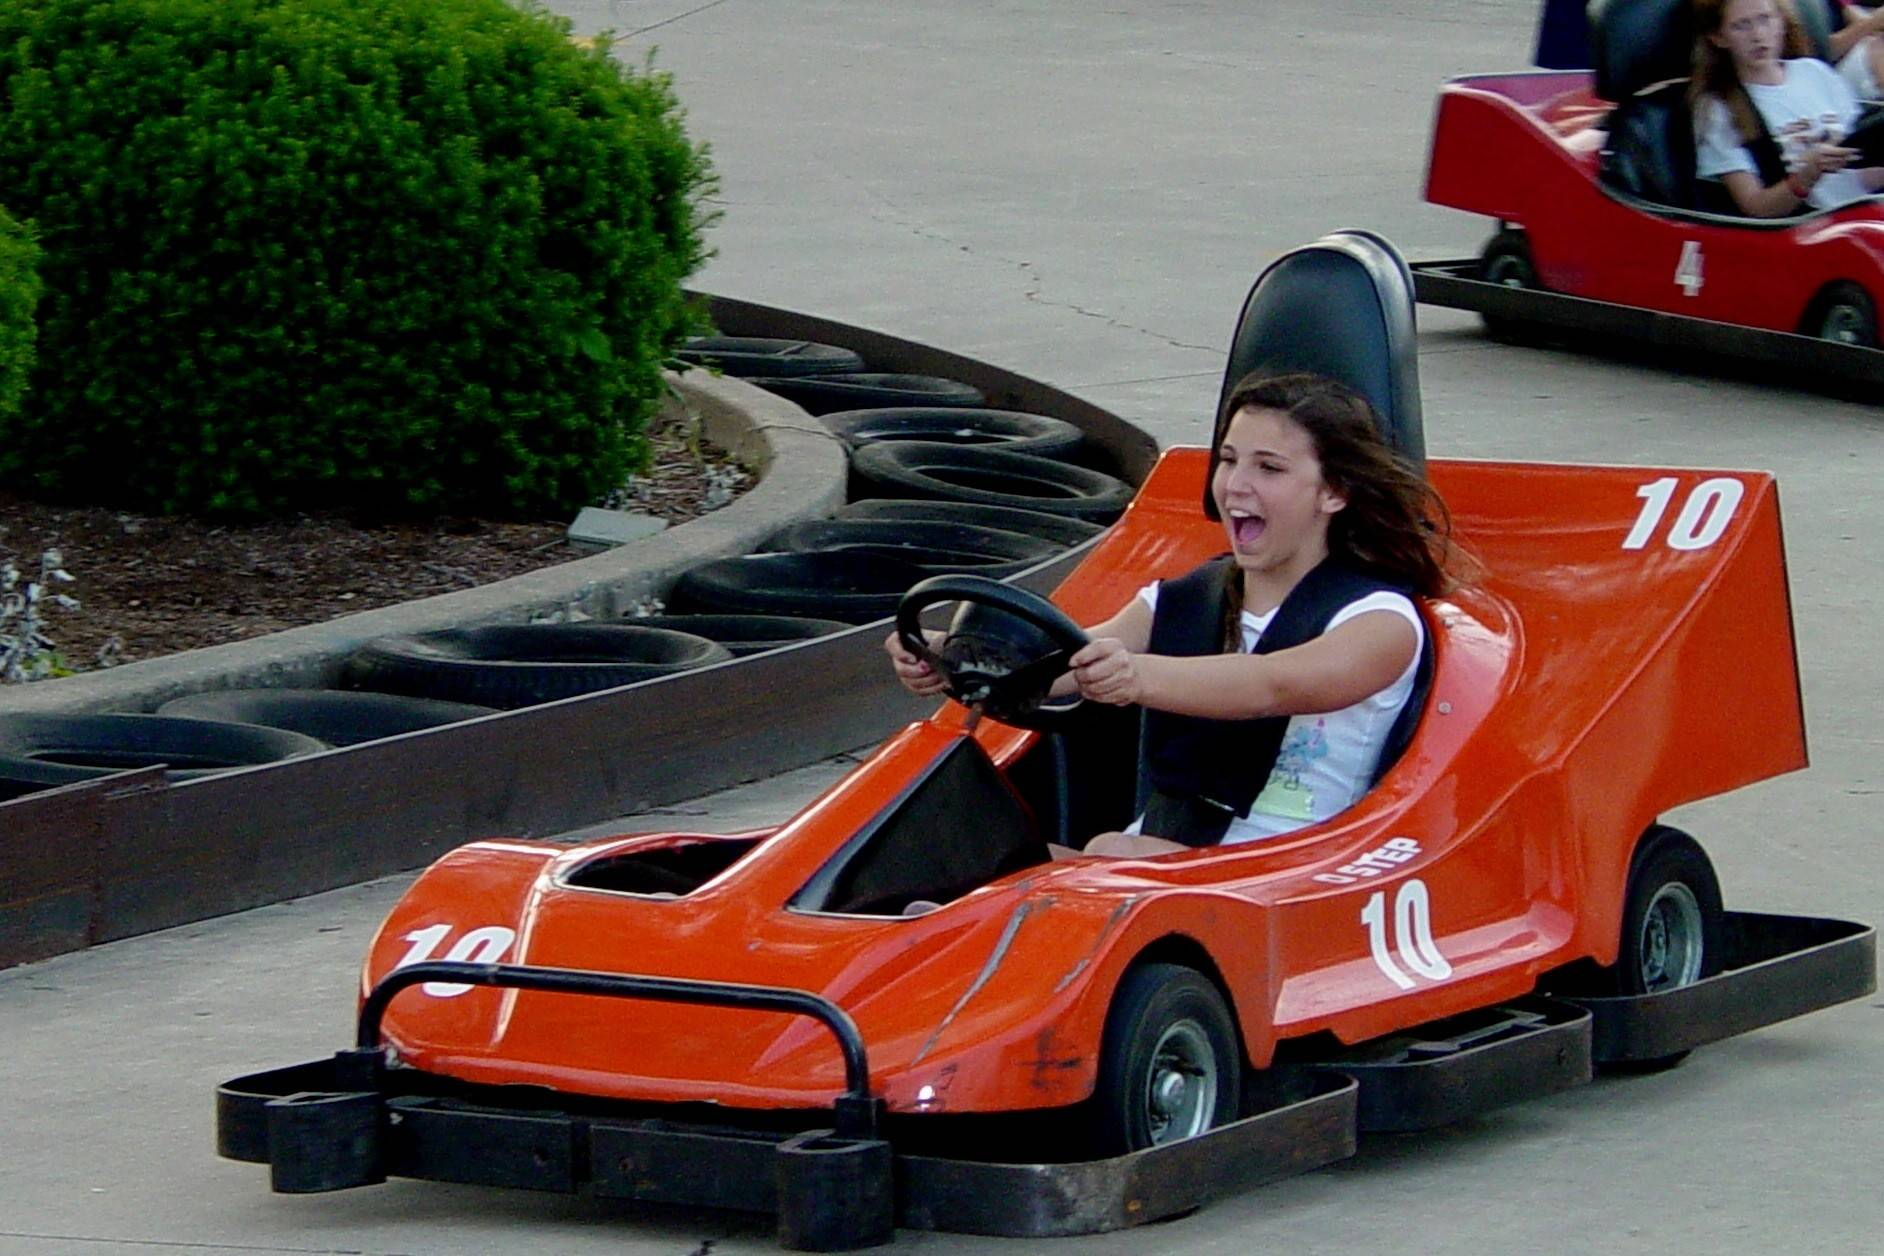 Race around the track at Funway Ultimate Entertainment Center in Batavia.